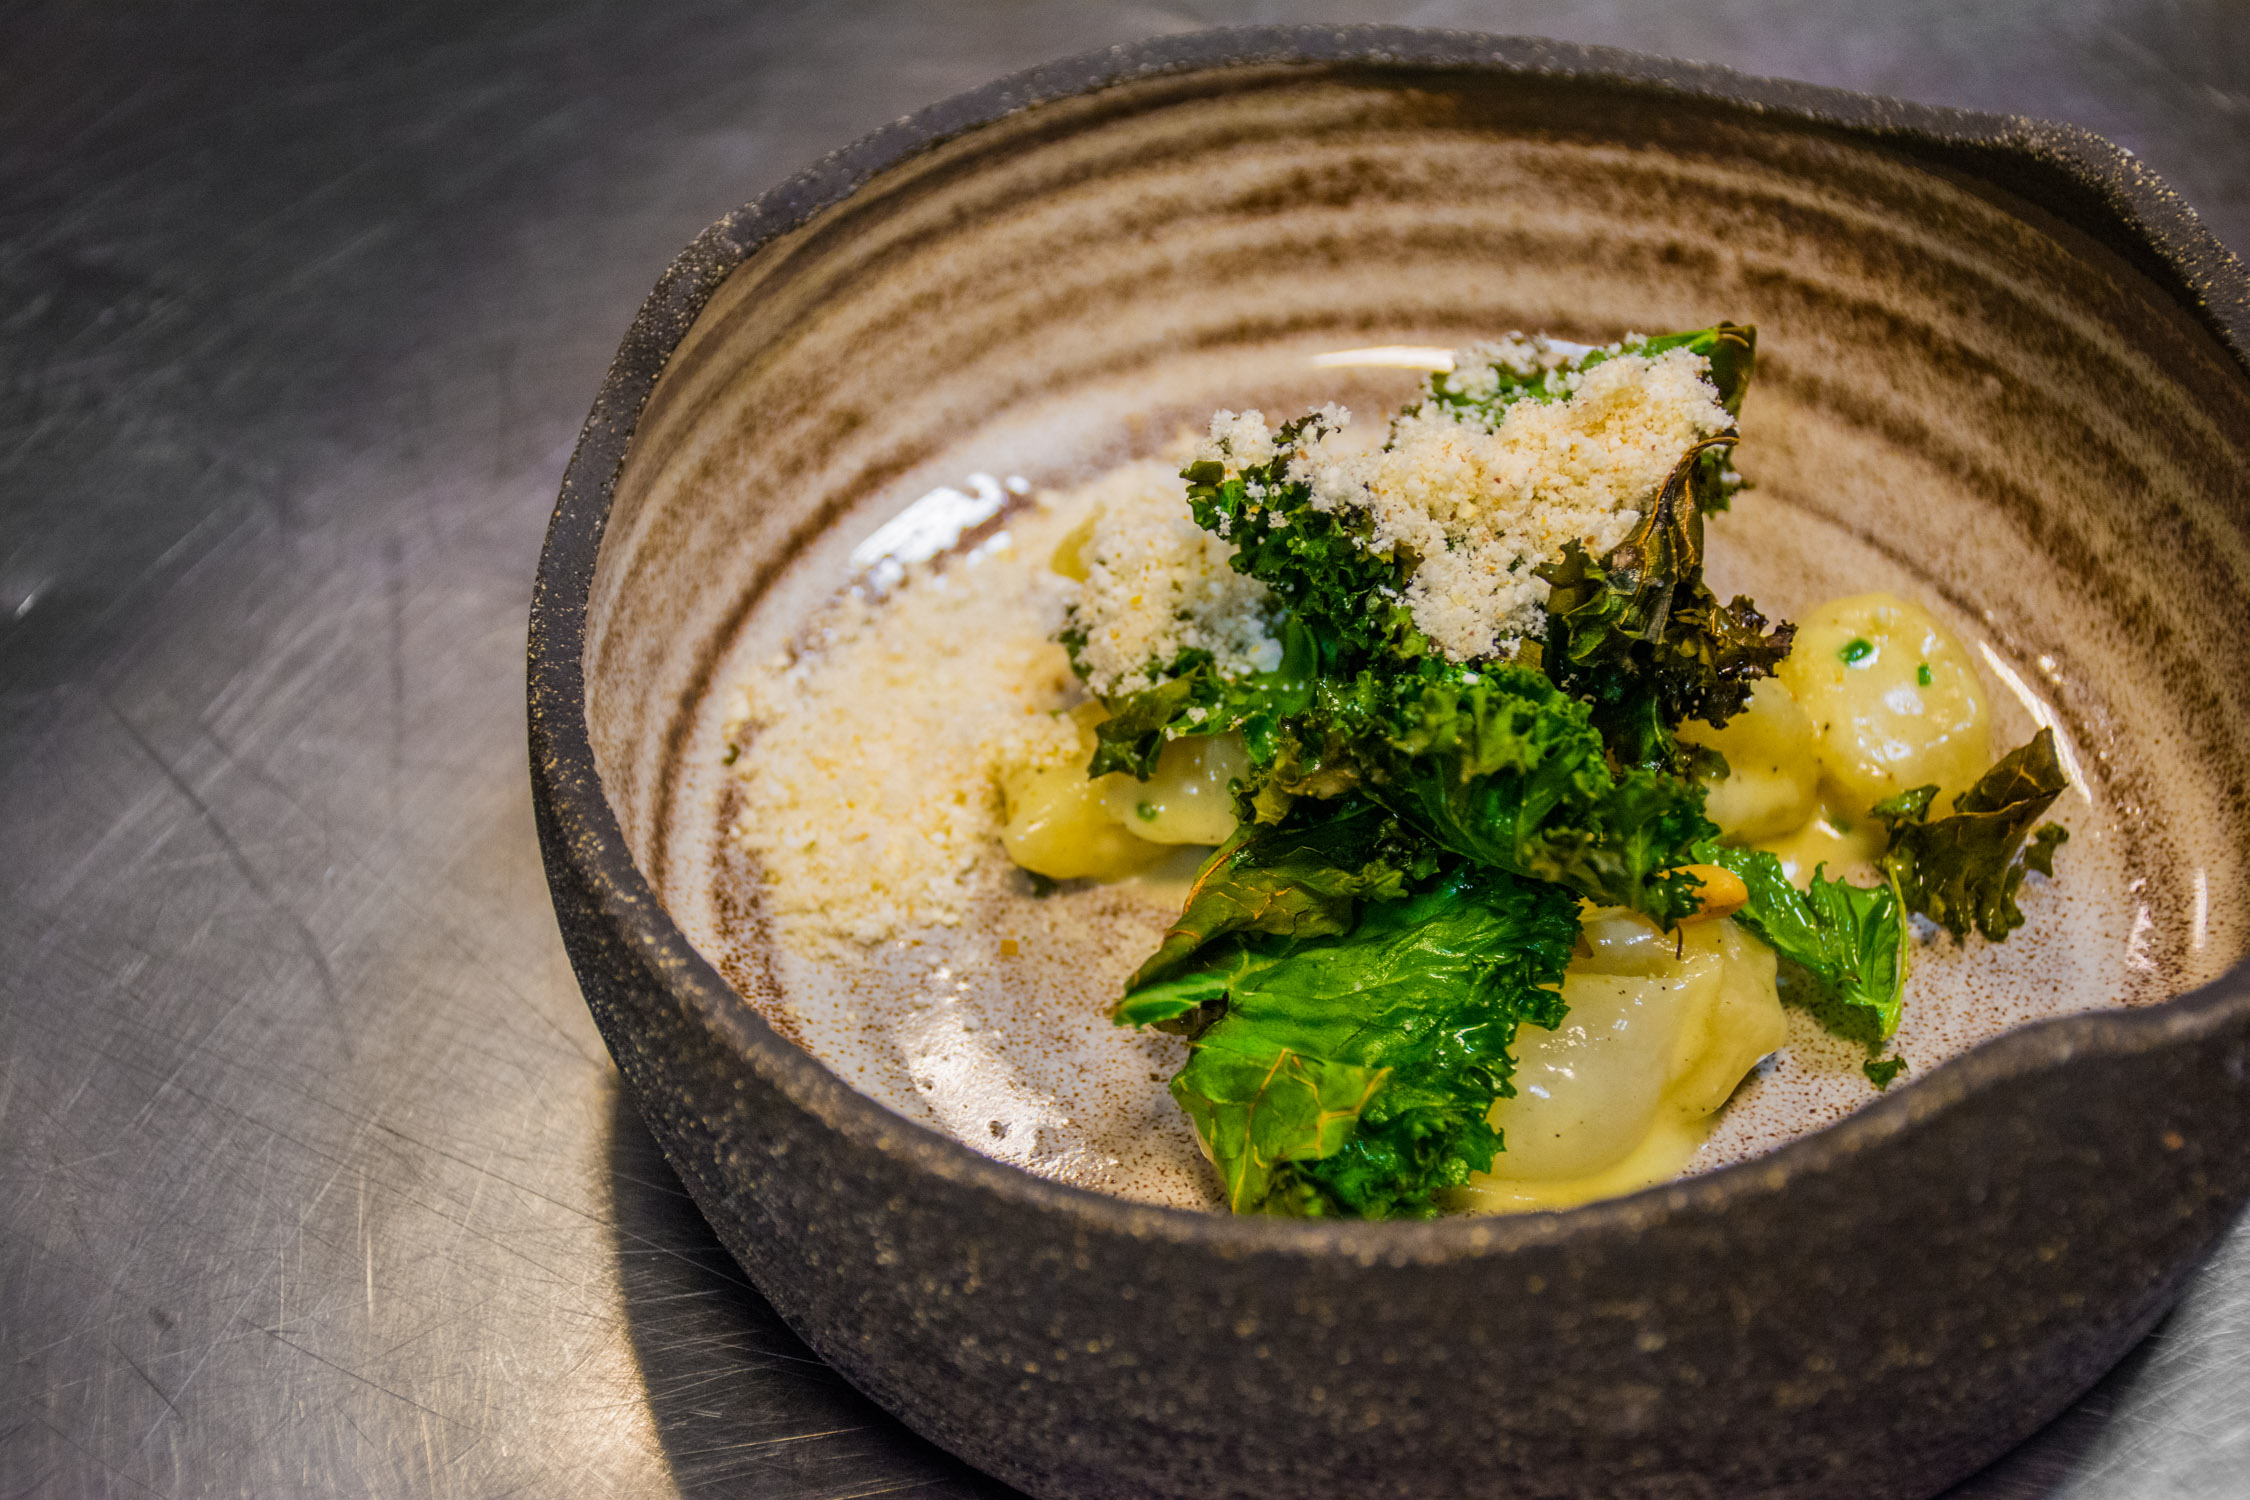 Gnocchi and pecorino served with baked kale, pearl onions, and smoke pine nuts